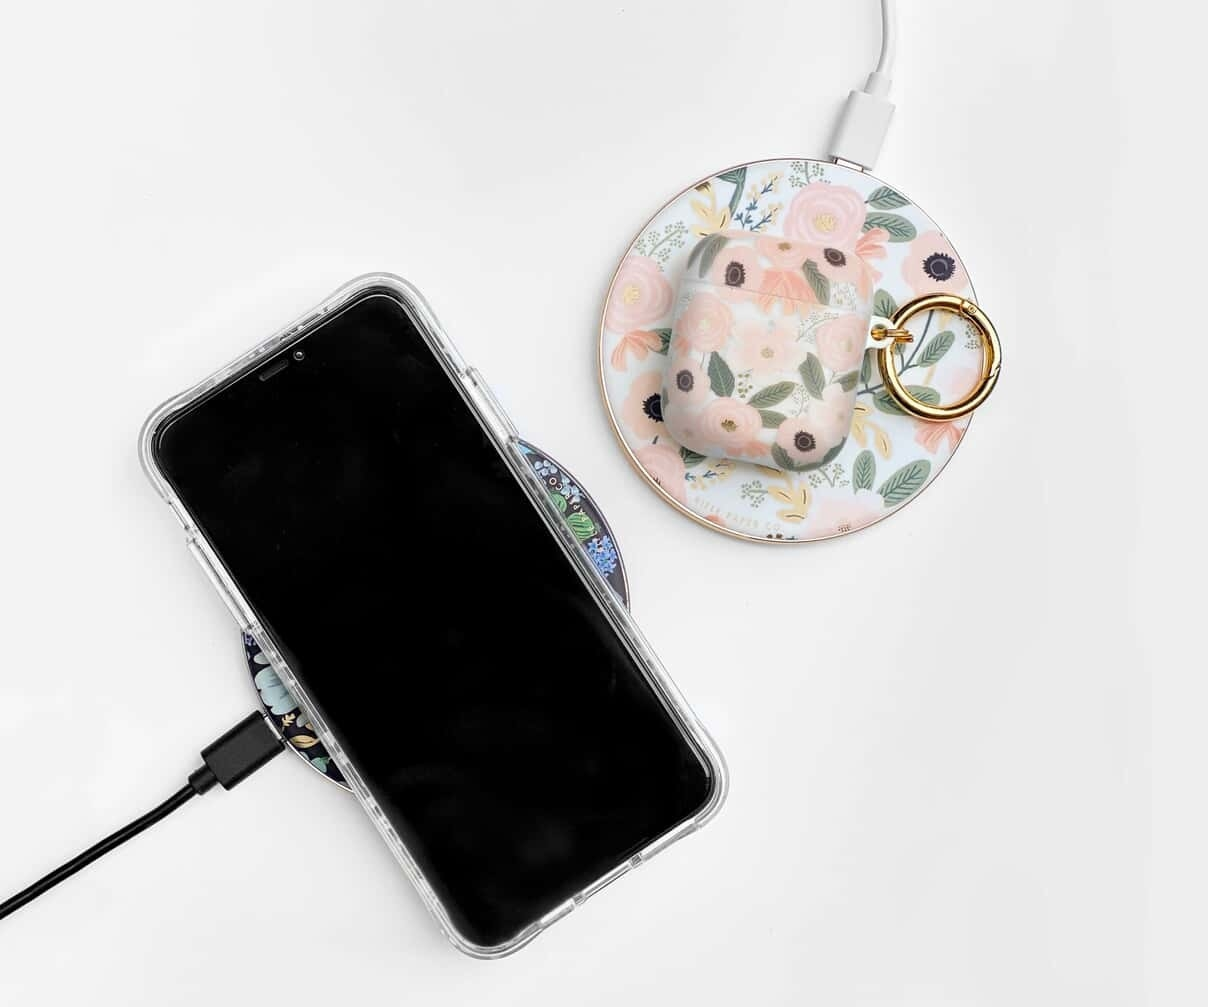 Two circular chargers in floral prints with a phone on one and AirPods on the other